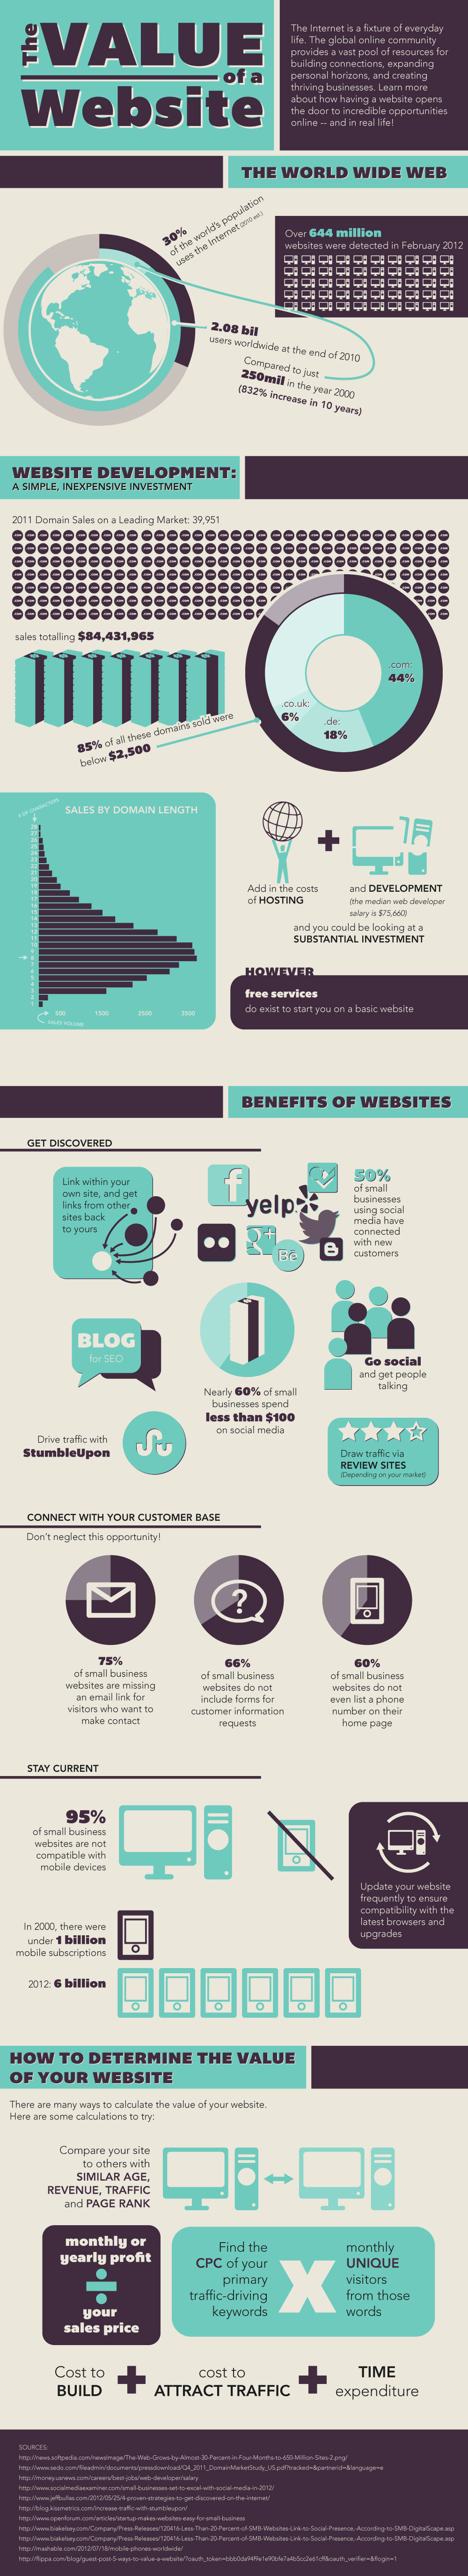 Infographic inspiration: The Value of a Website